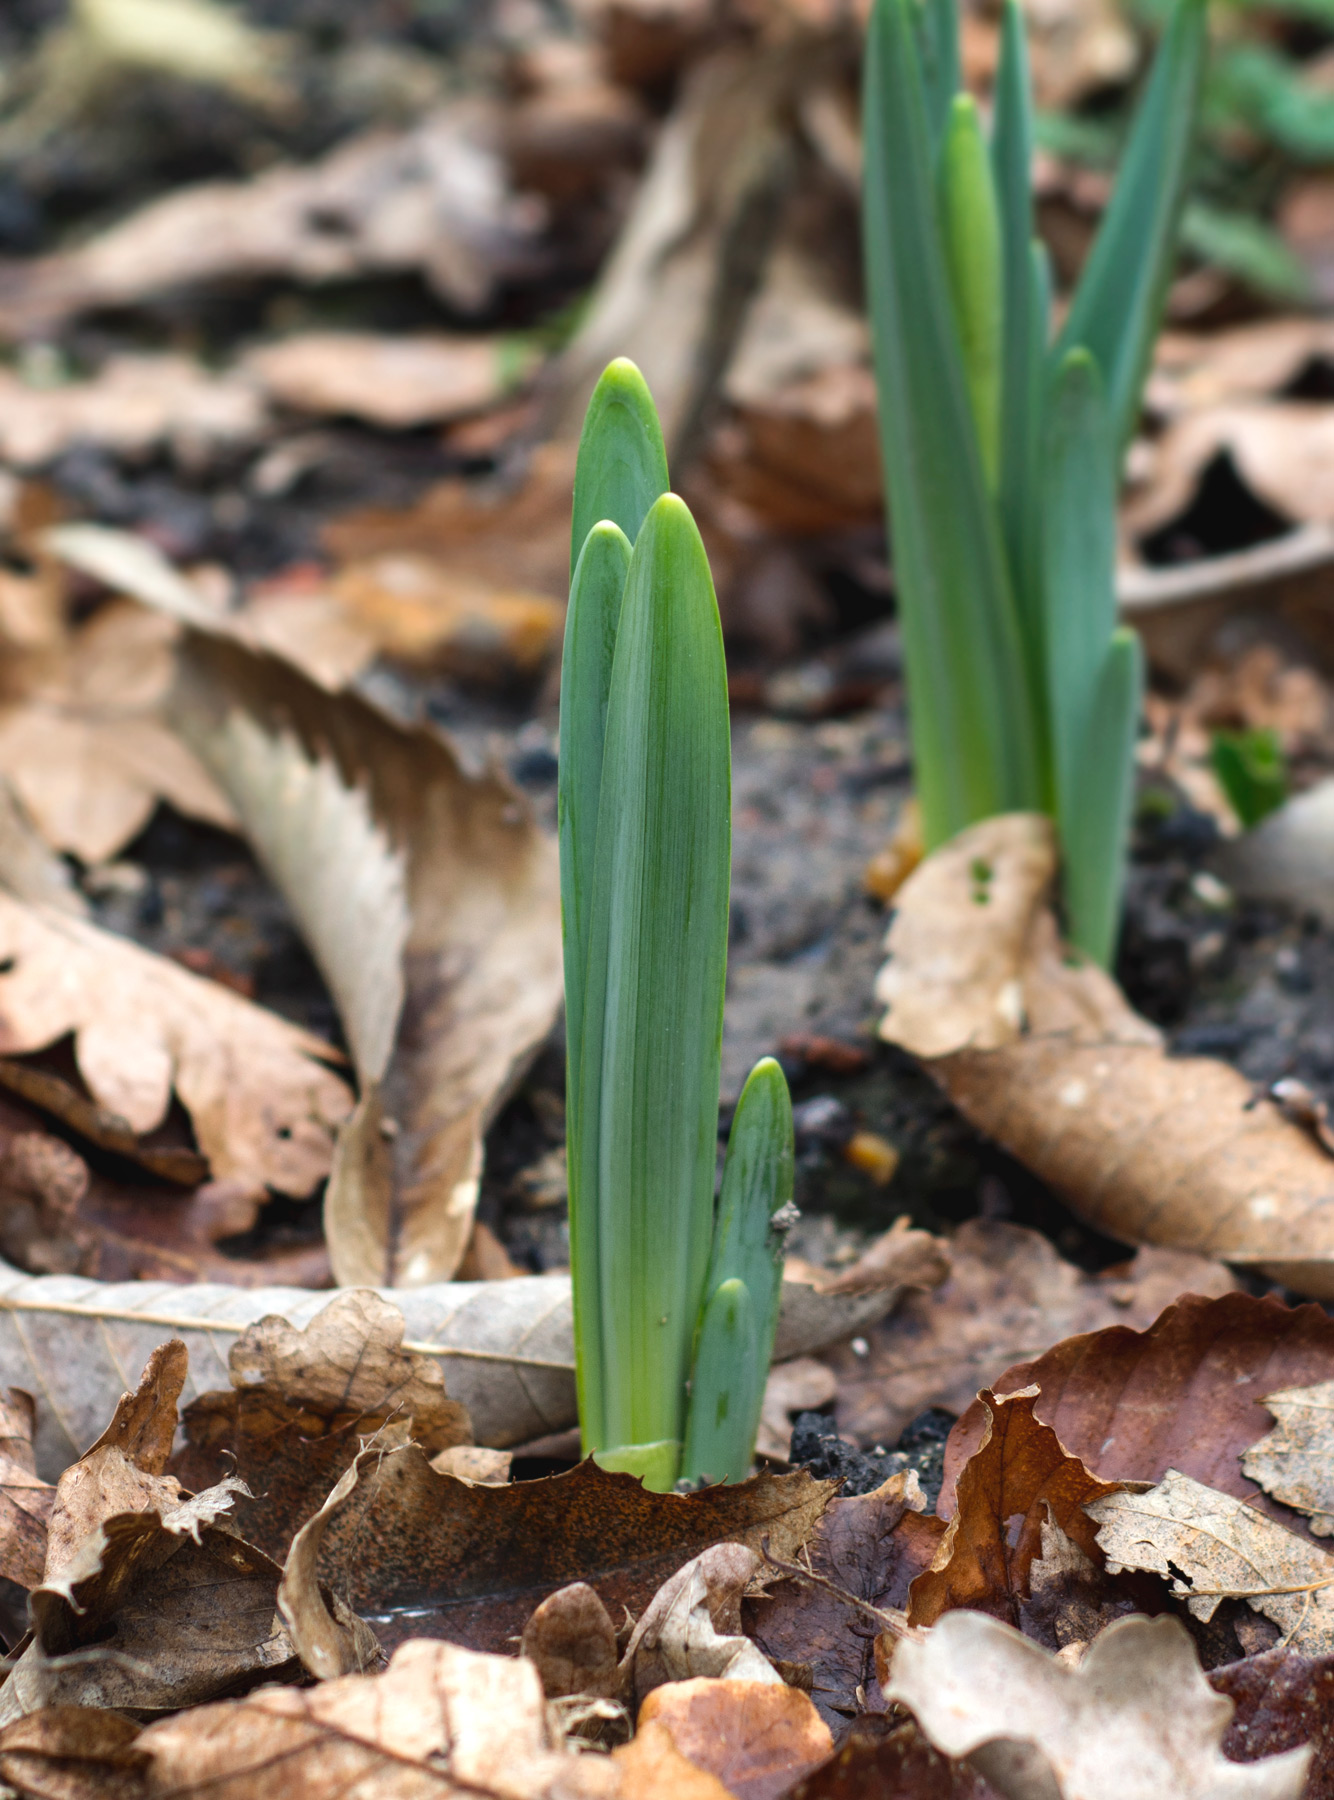 Green shoots in brown leaves